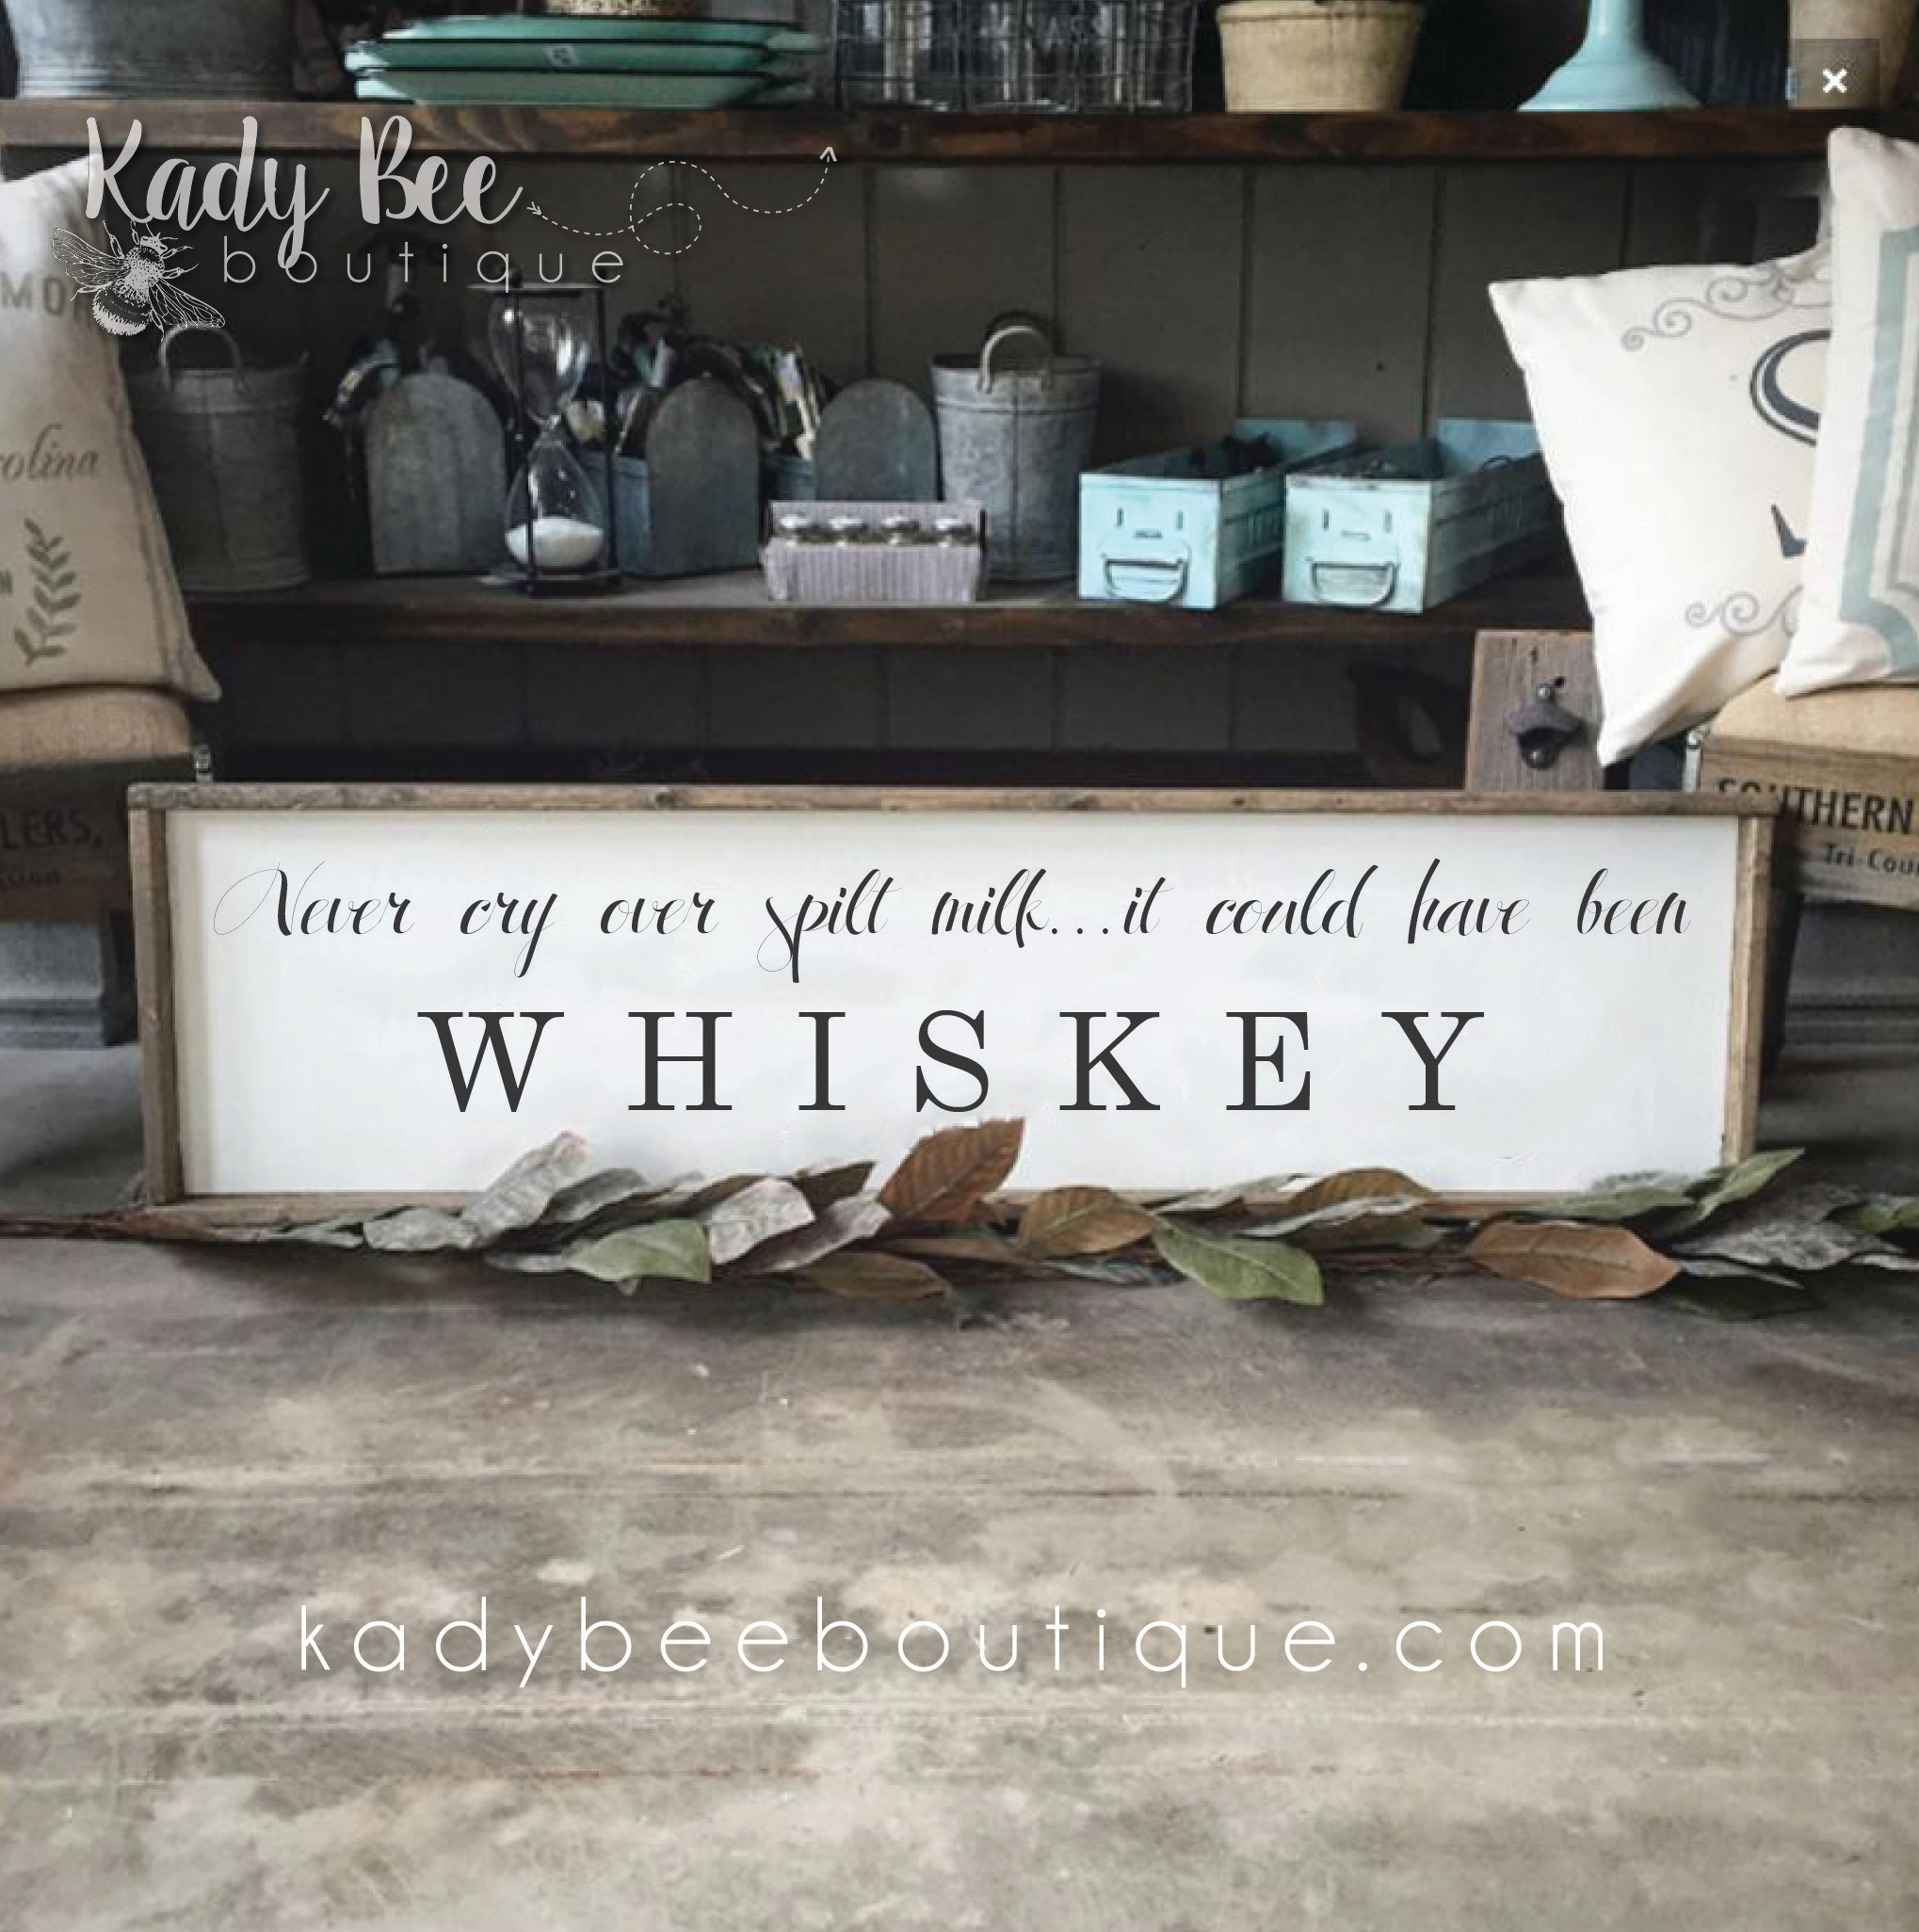 It Could Have Been Whiskey3